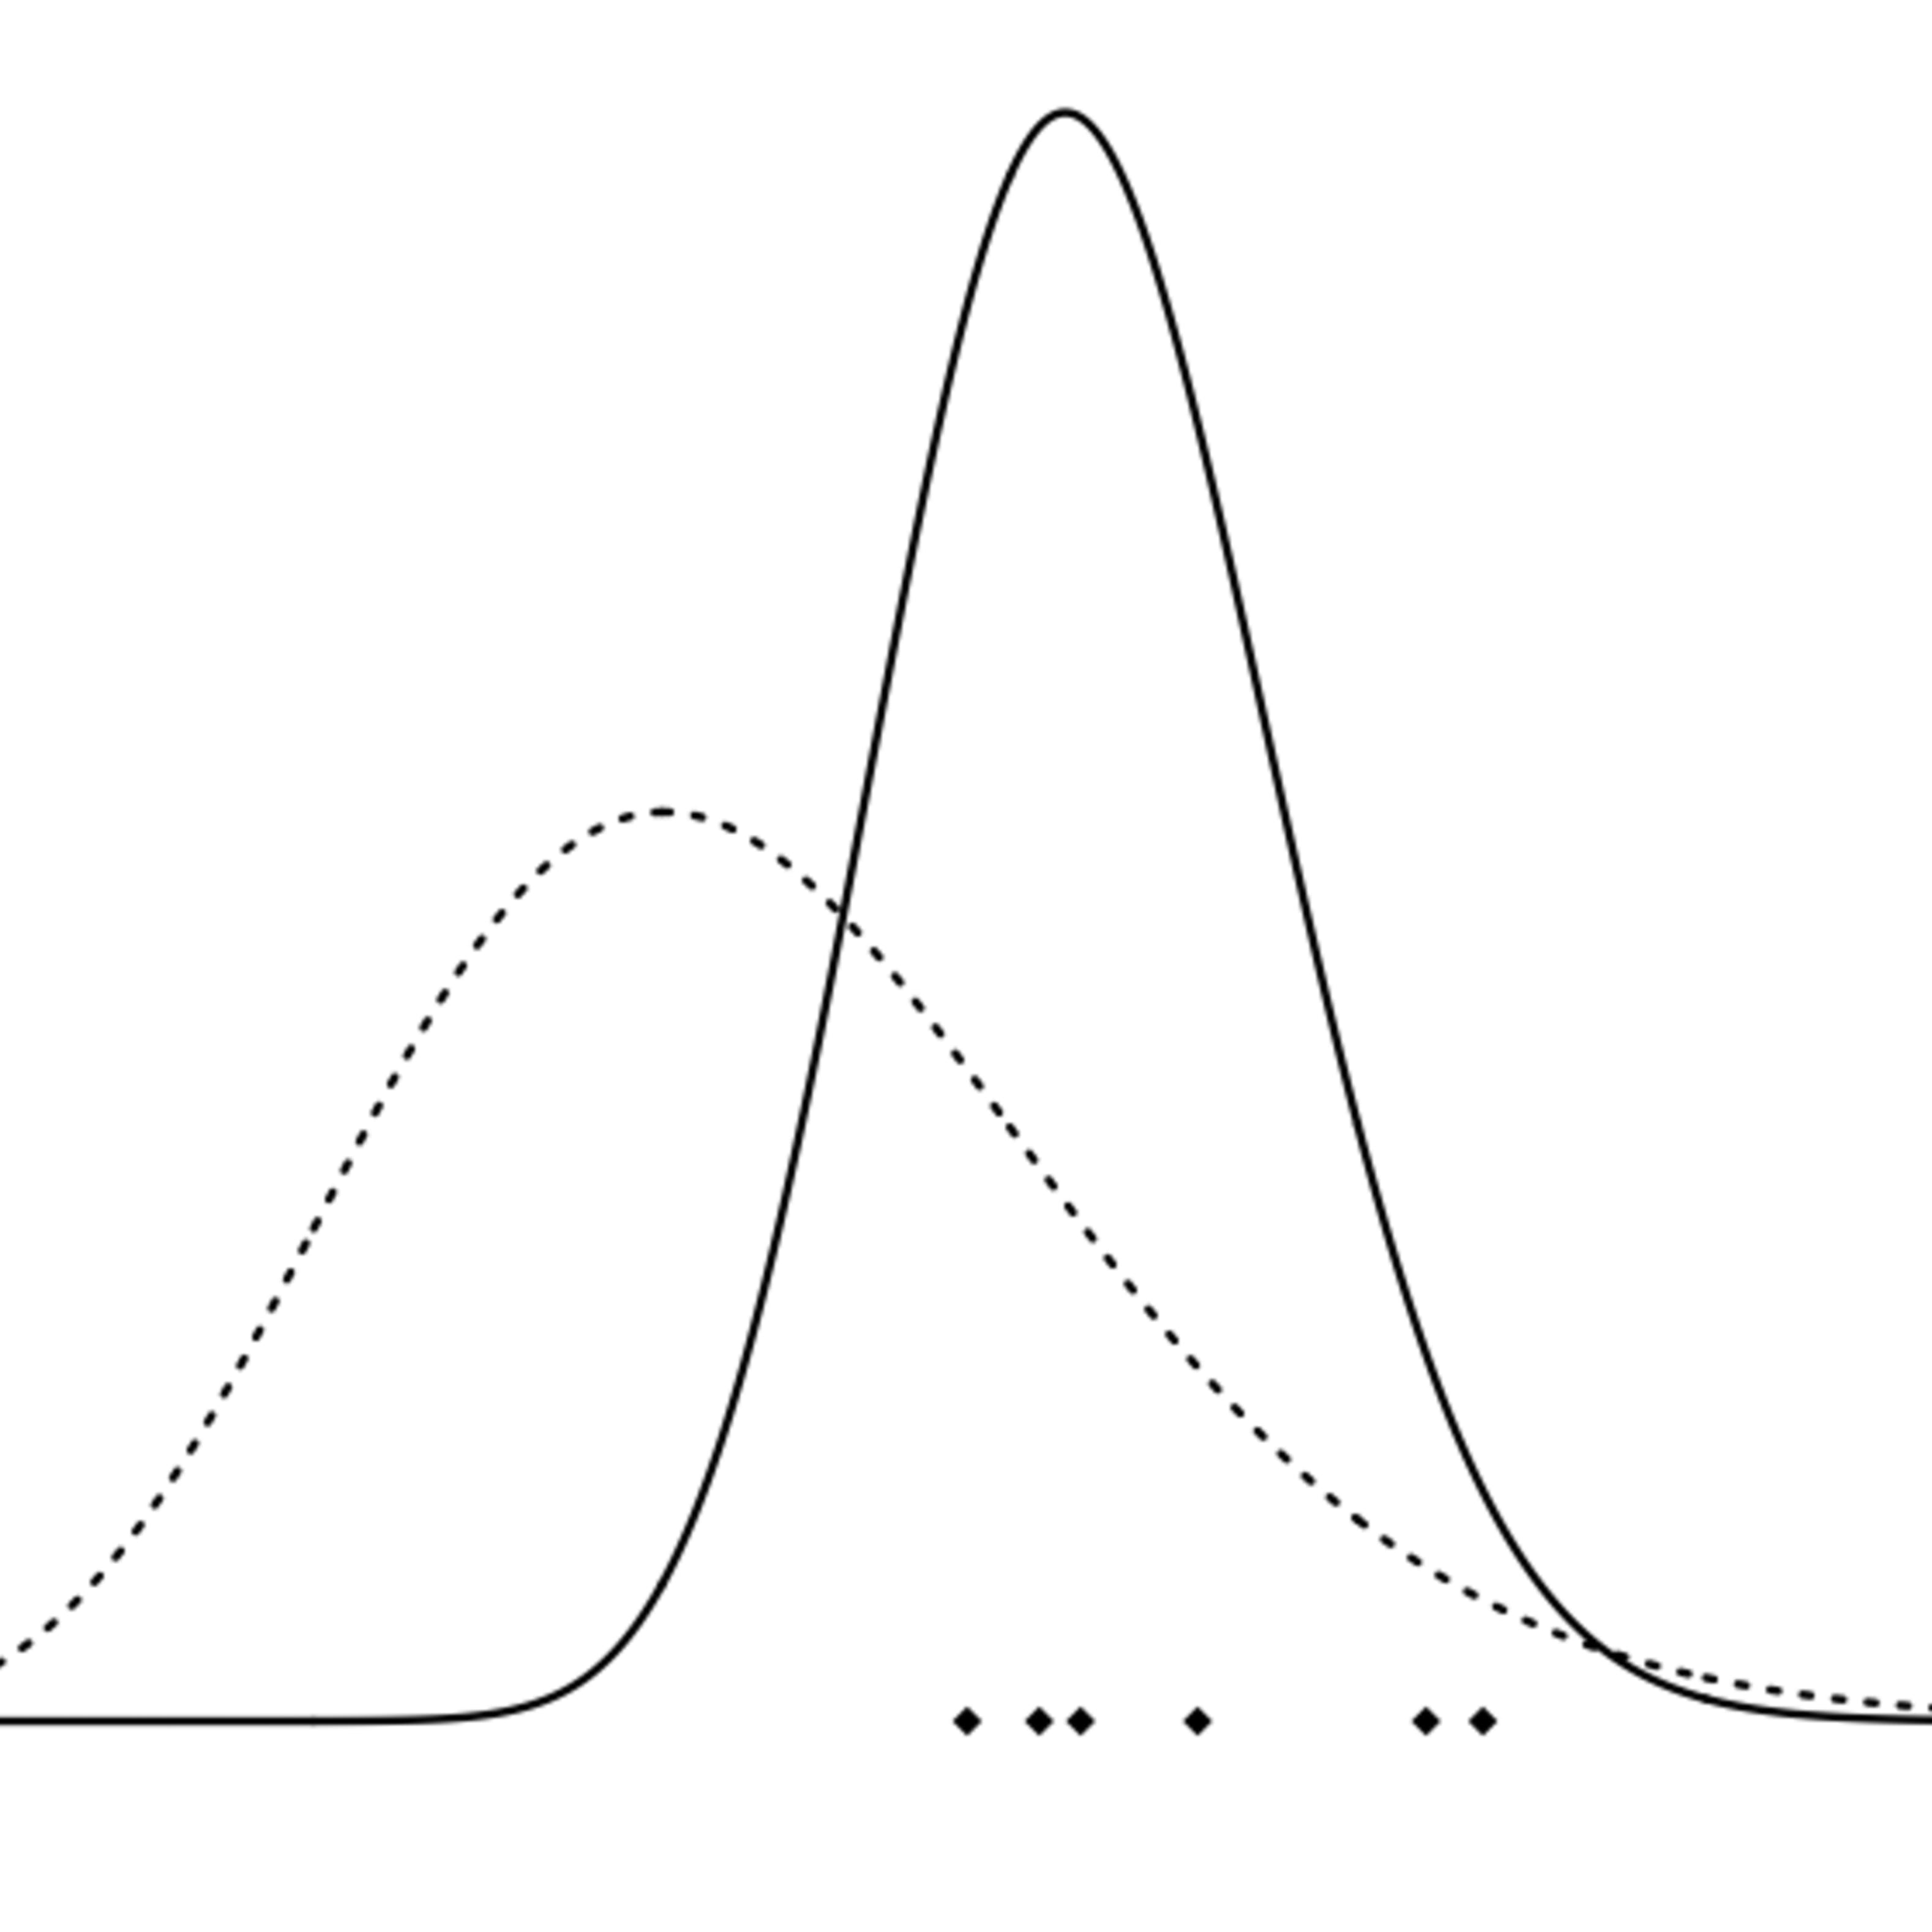 Bayesian Statistics: From Concept to Data Analysis | Coursera